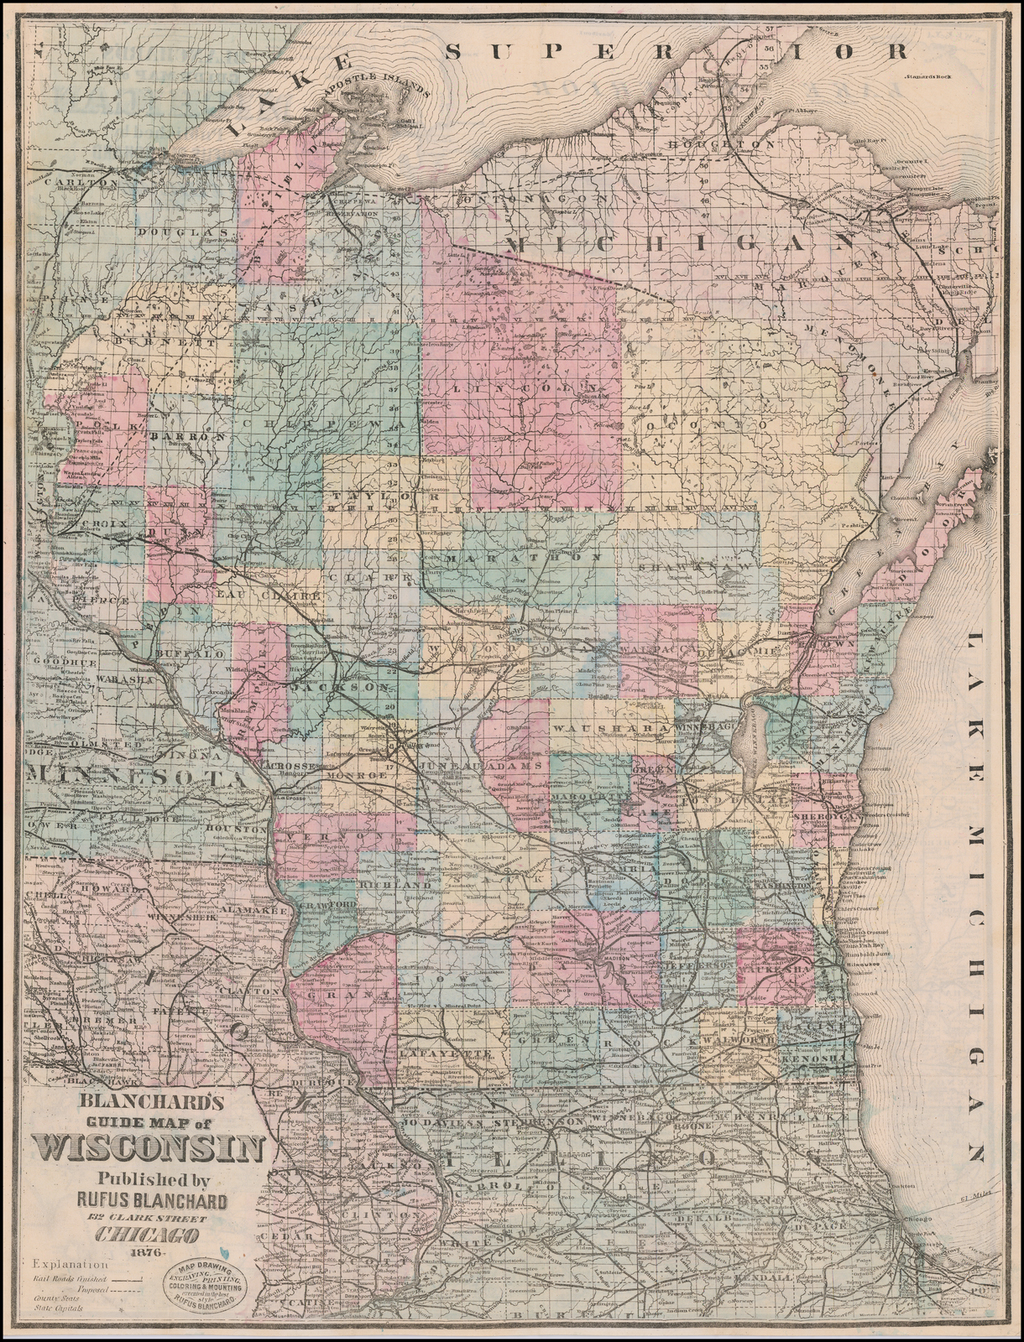 (Wisconsin and Michigan Maps)  Blanchard's Guide Map of Wisconsin Published by Rufus Blanchard . . . 1876 (with Blanchard Michigan on the verso!) By Rufus Blanchard